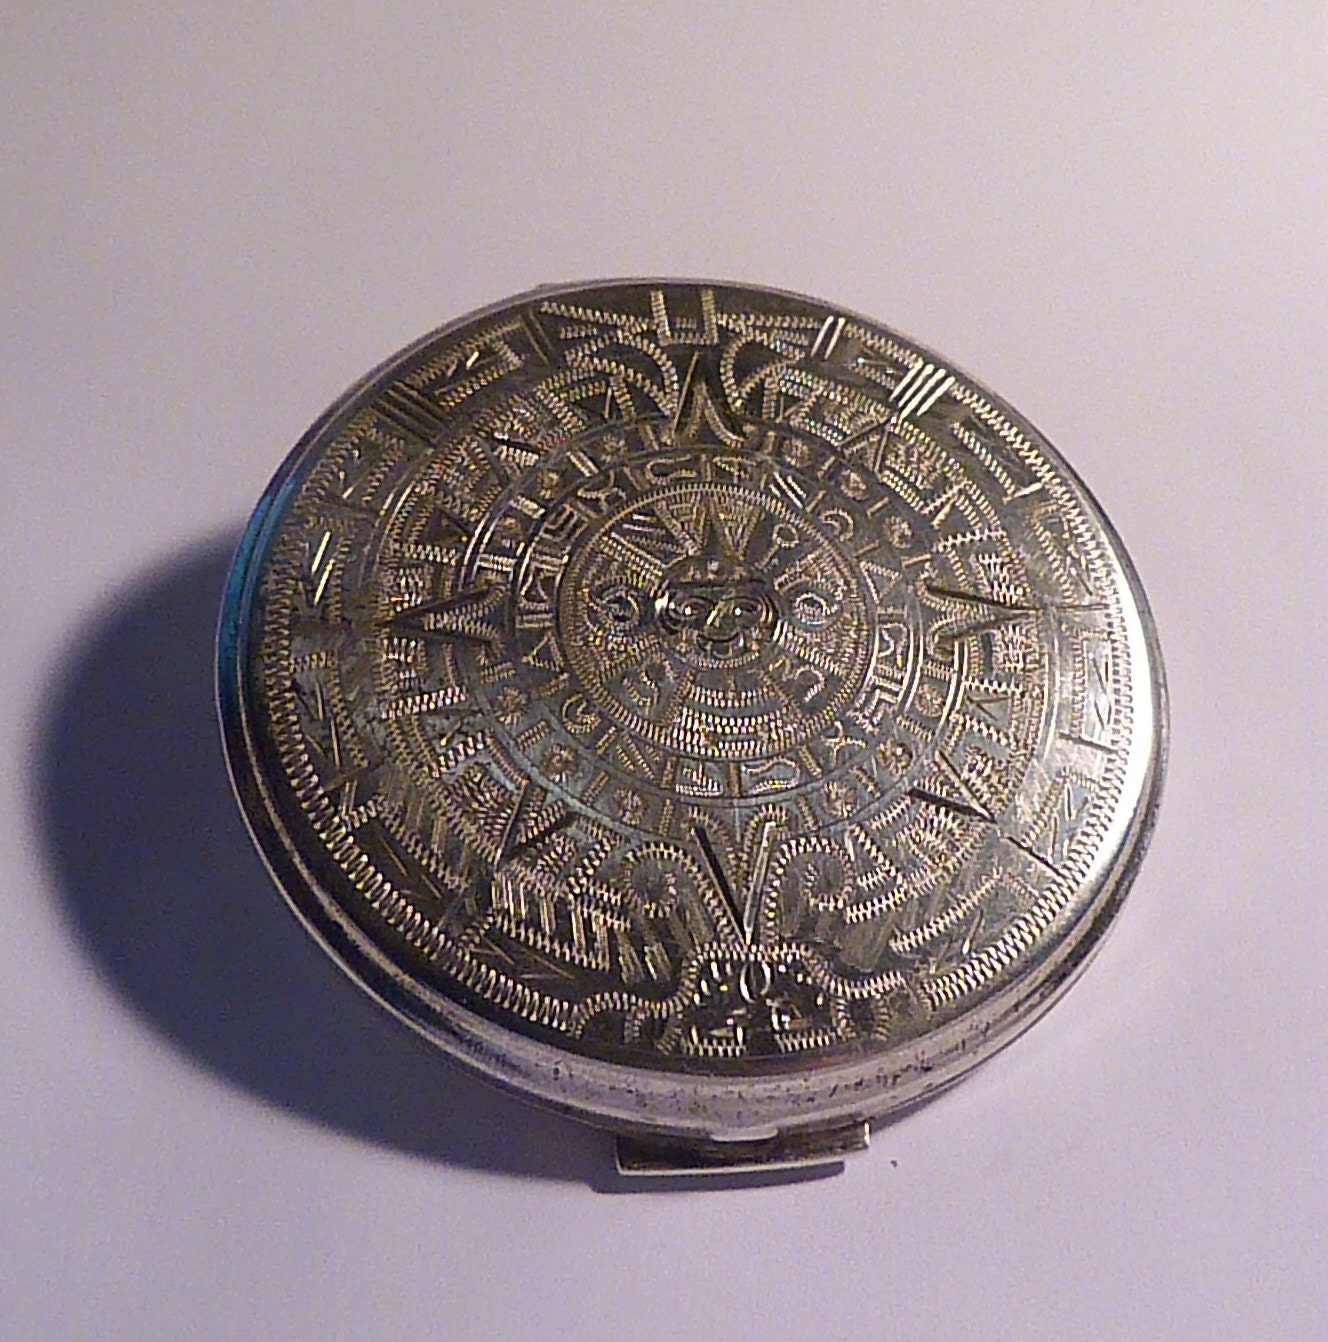 Vintage solid silver comact mirrors Mayan calendar MAYAN CALENDAR MEXICAN themed sterling powder compact bridesmaids gifts something old